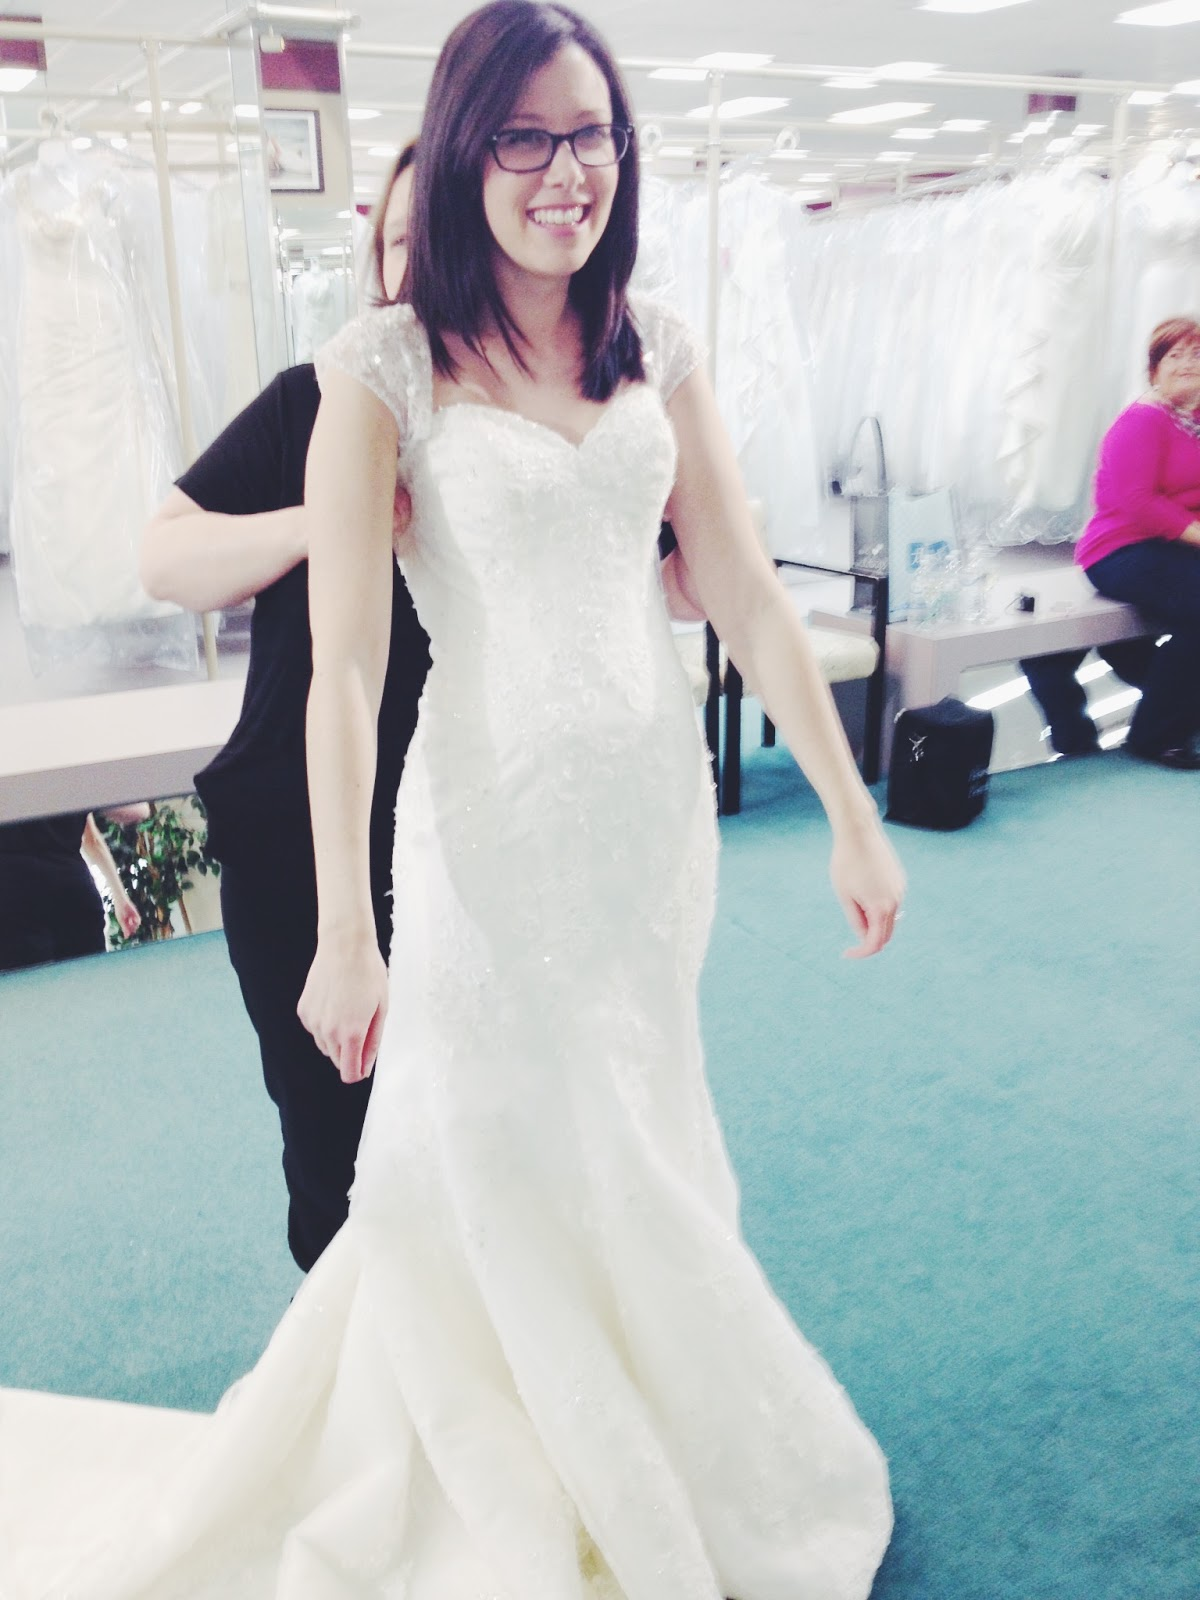 bethany leigh: ordered a wedding dress + shoes